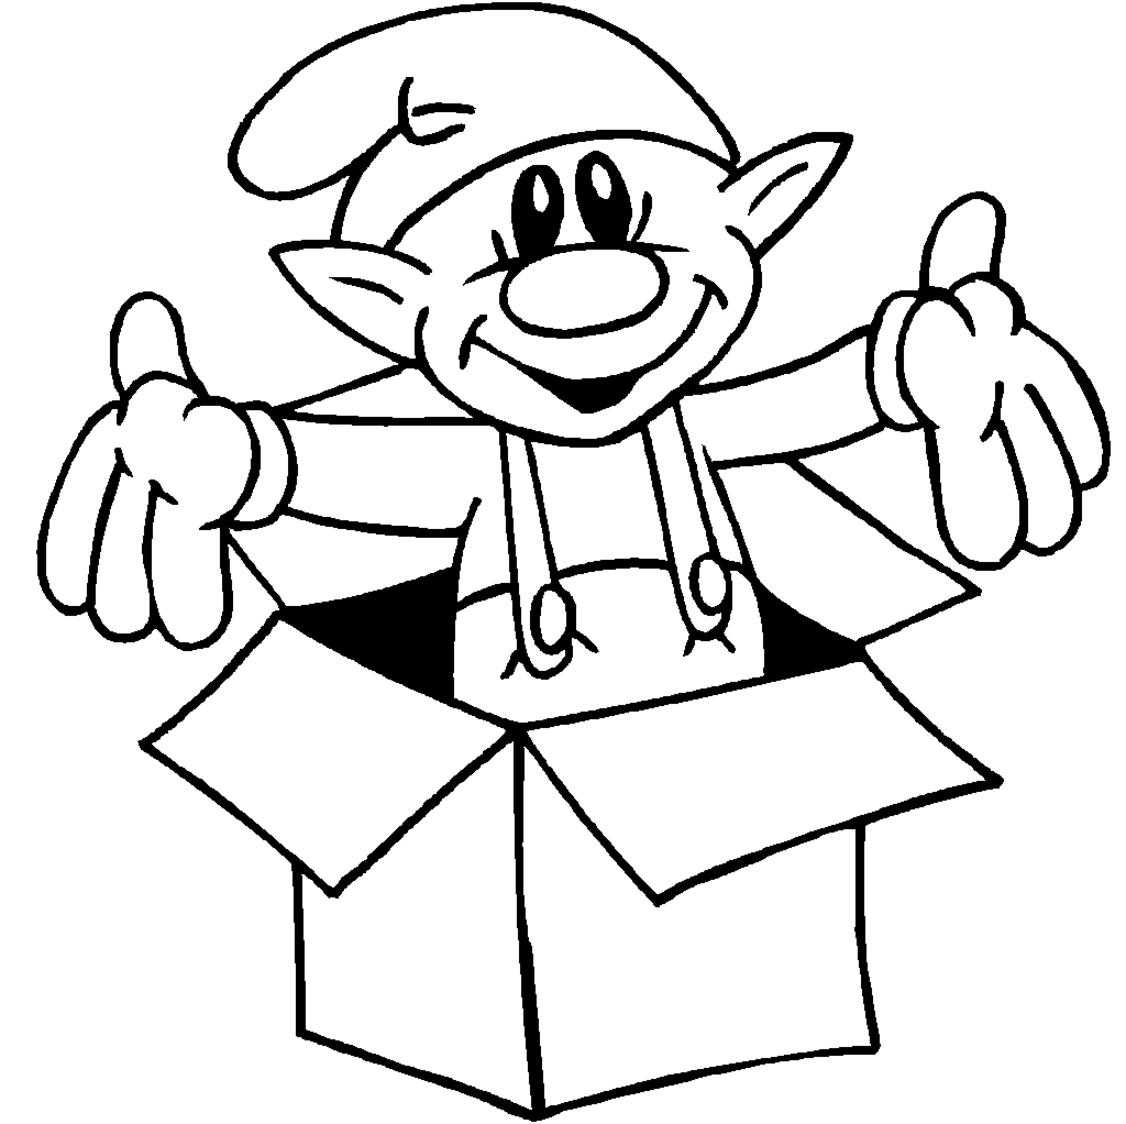 1126x1124 Coloring Pages Christmas Elf Simple Colorings